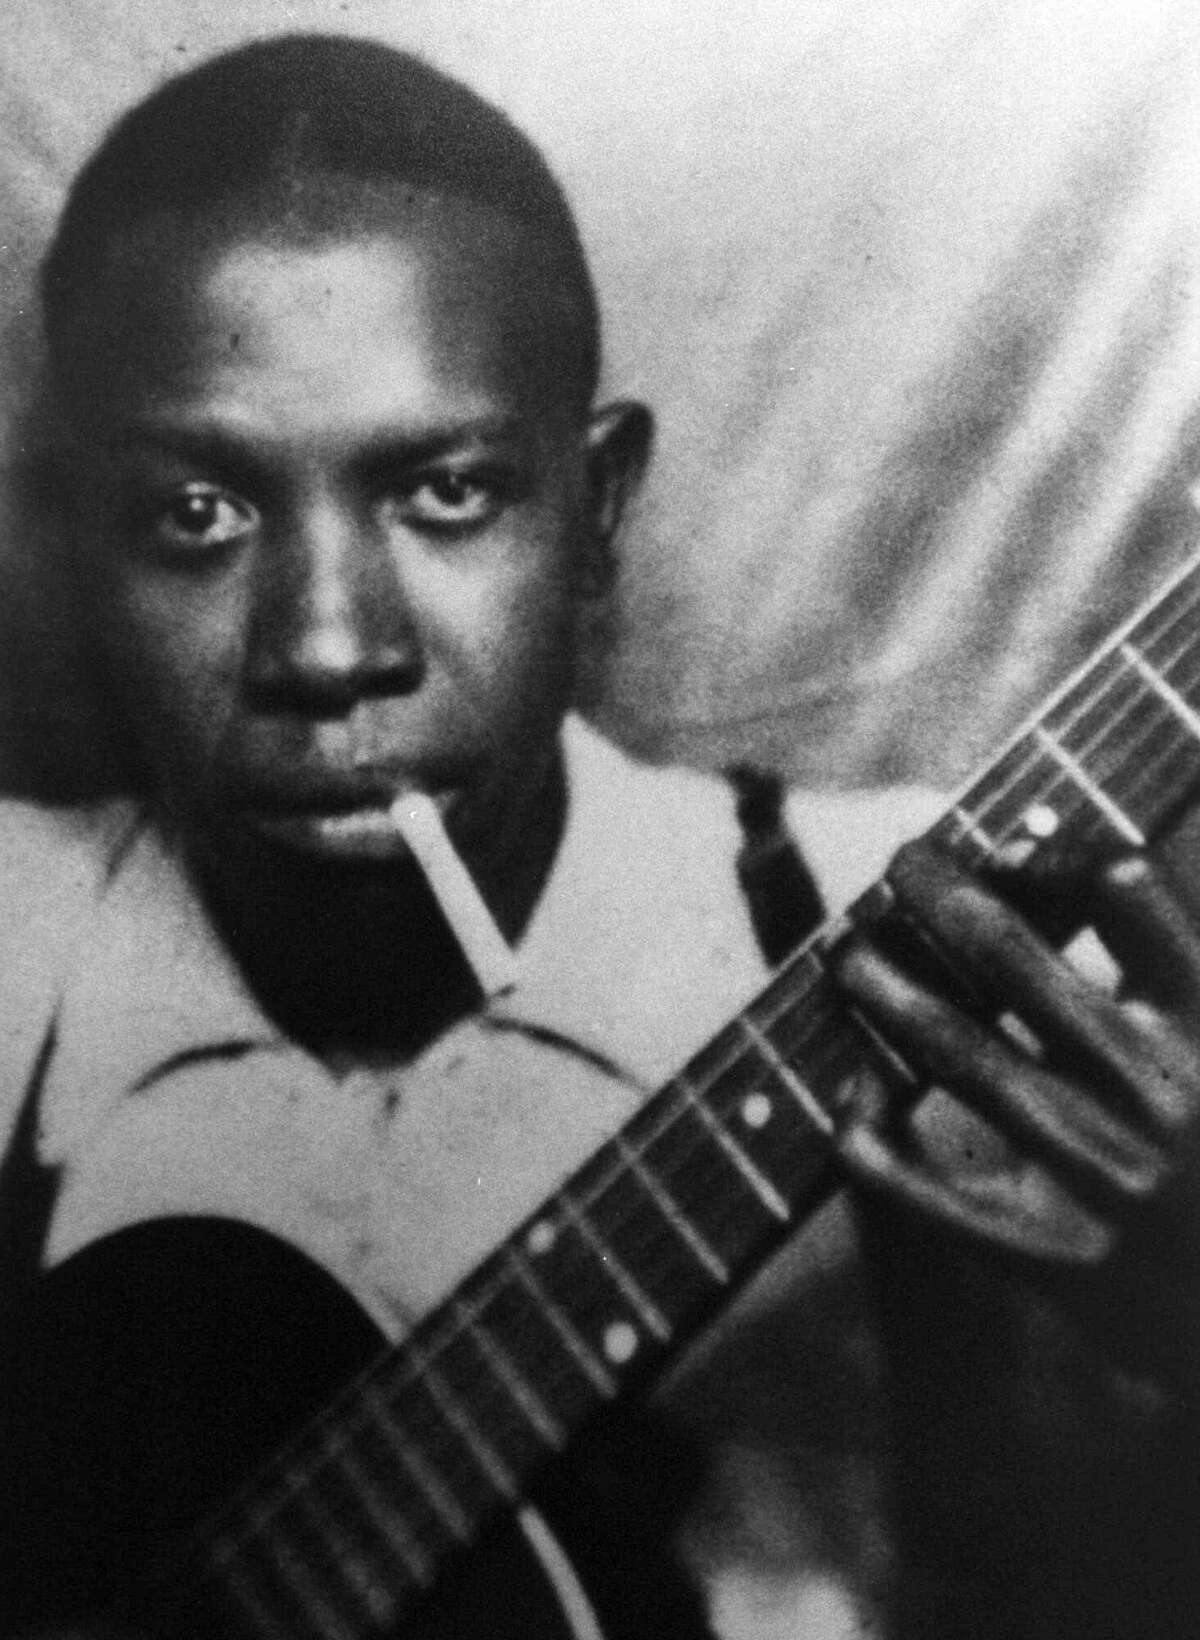 Blues guitarist and singer Robert Johnson, taken in the early 1930s.